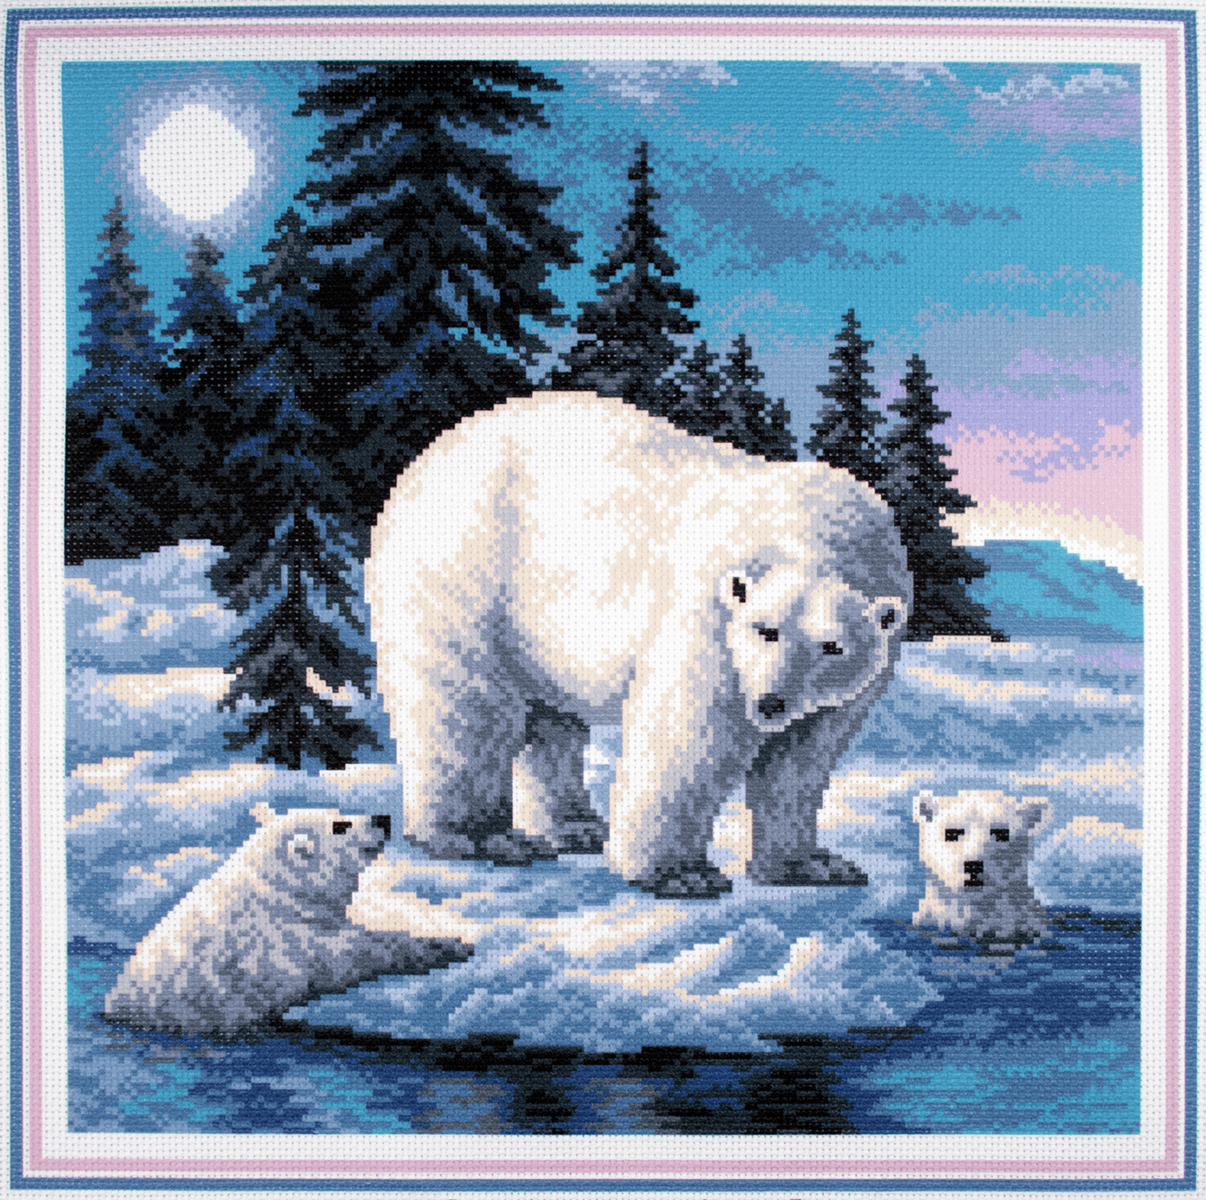 Collection dArt Polar Bear Cute Family Printed 14 Count Cotton Aida Canvas Cross Stitch